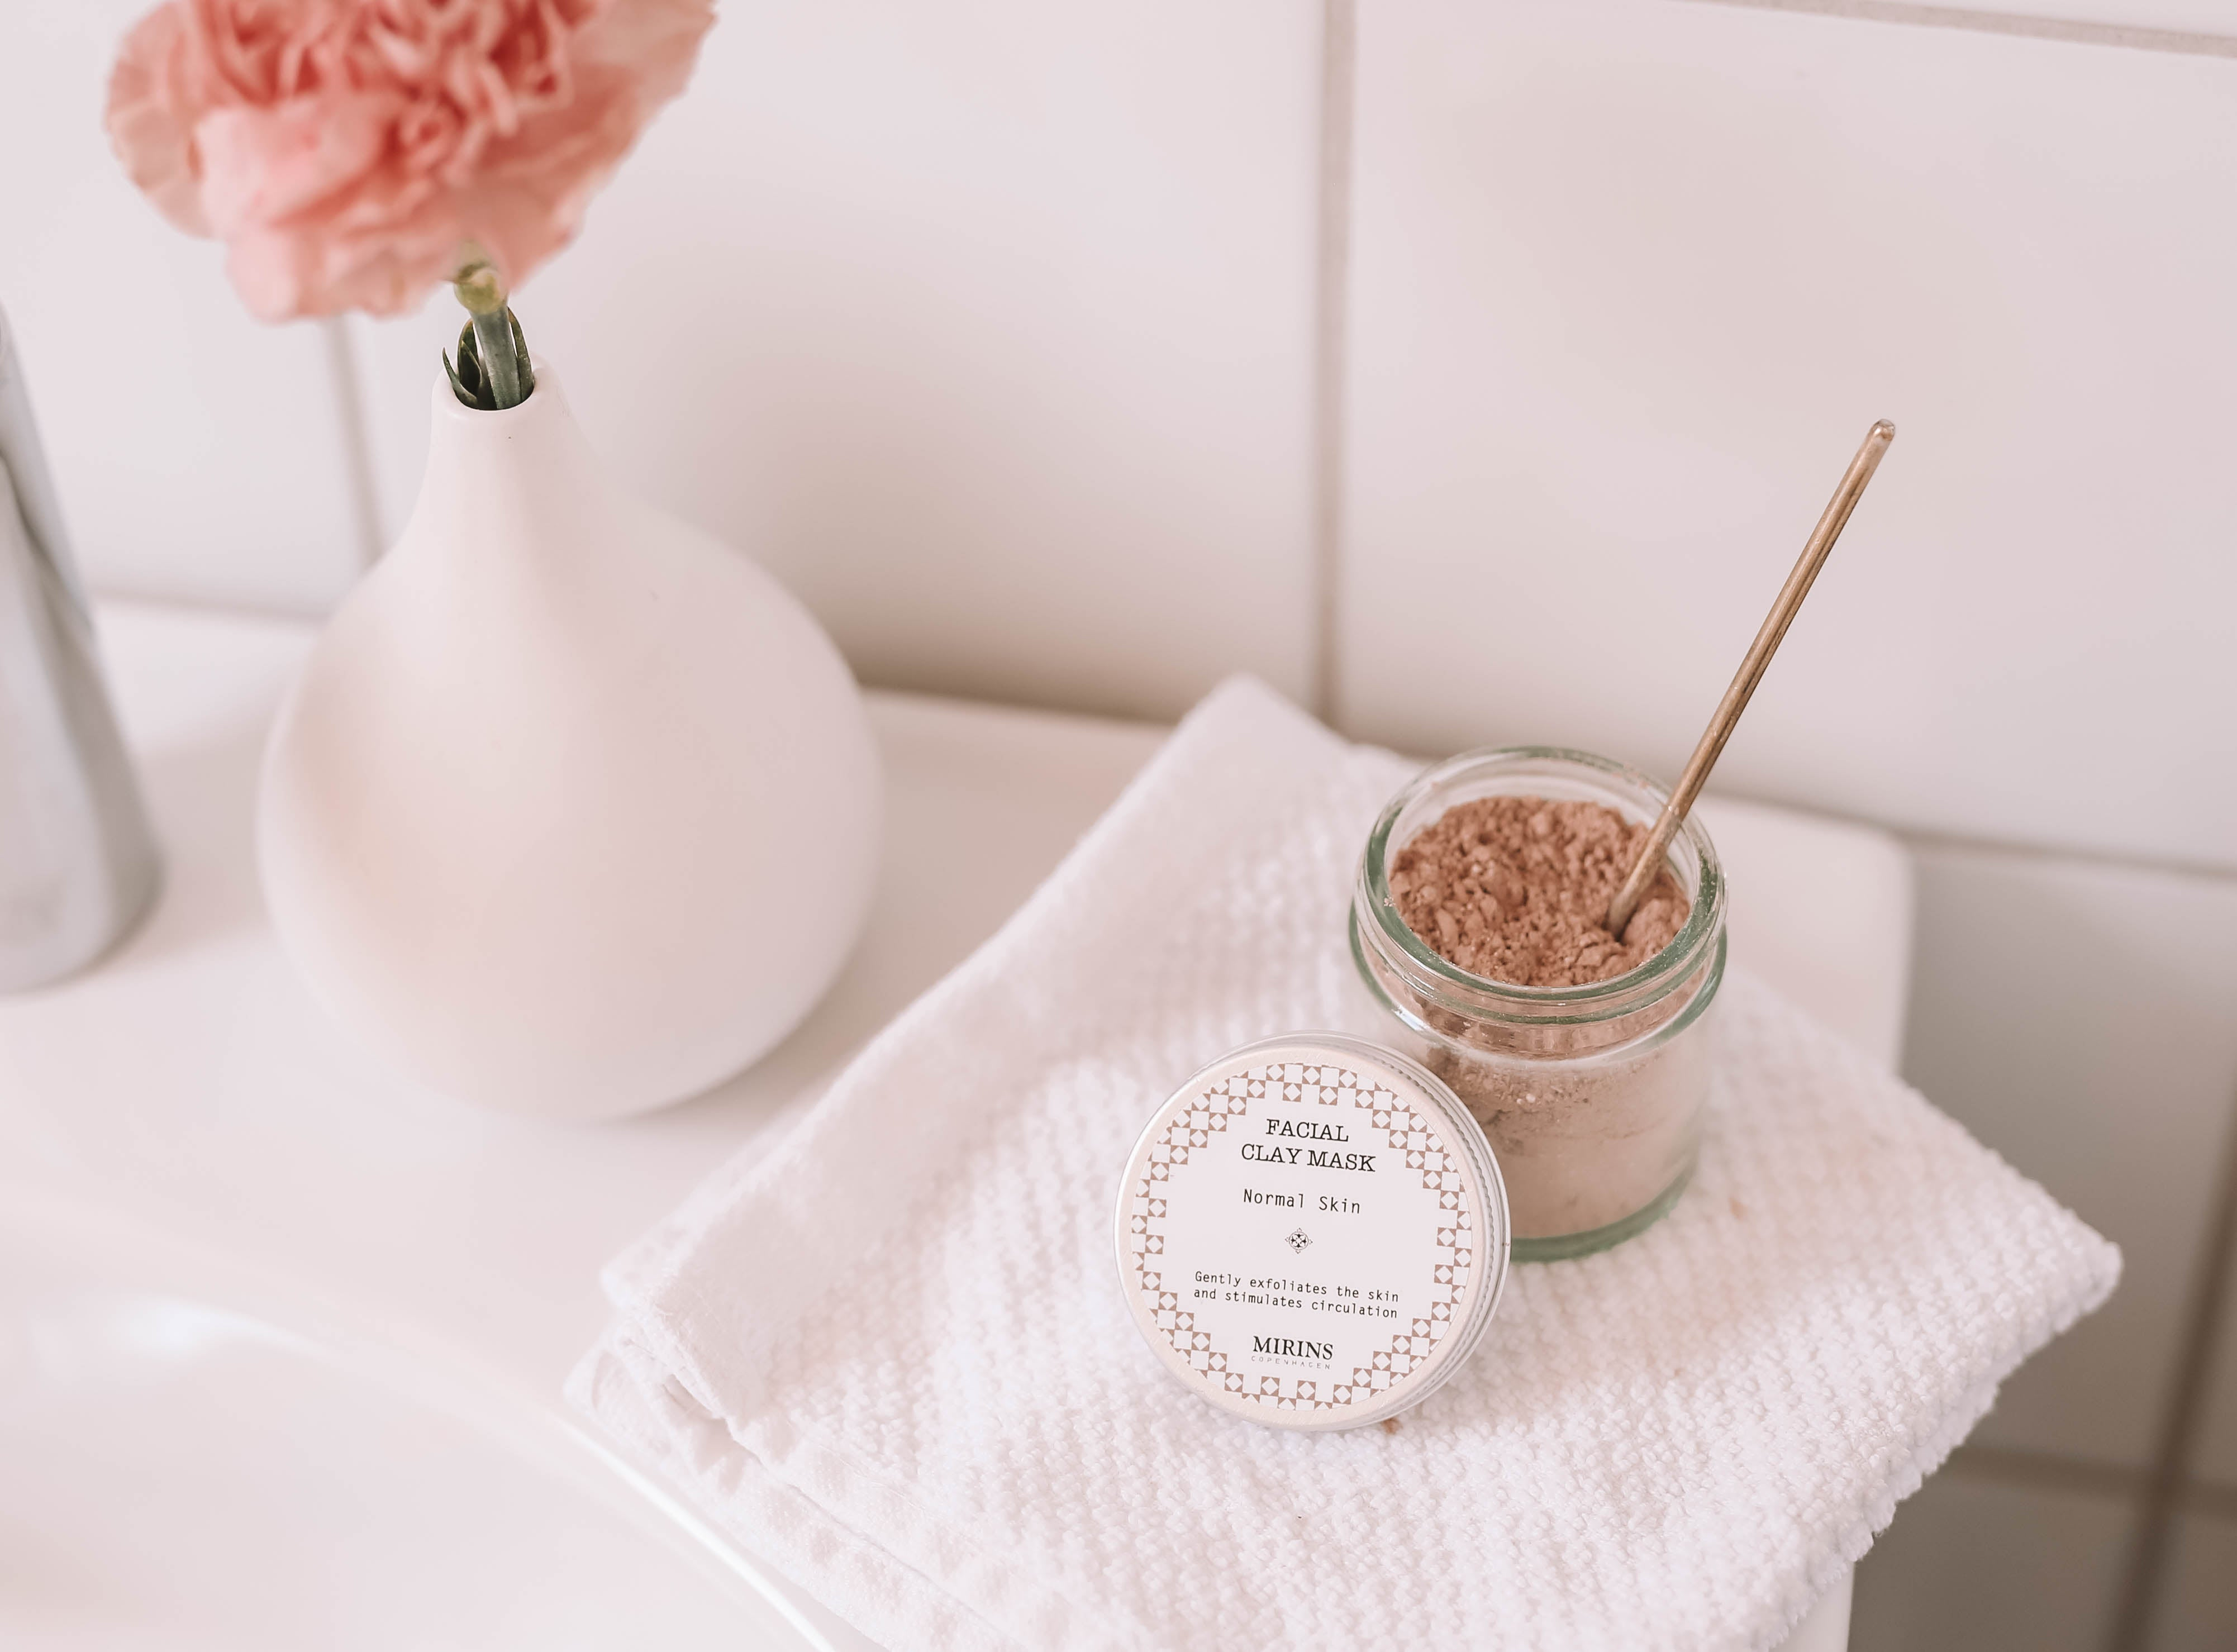 Facial Clay Mask - Normal Skin - The Weekly Shop | Plastic Free Online Shop